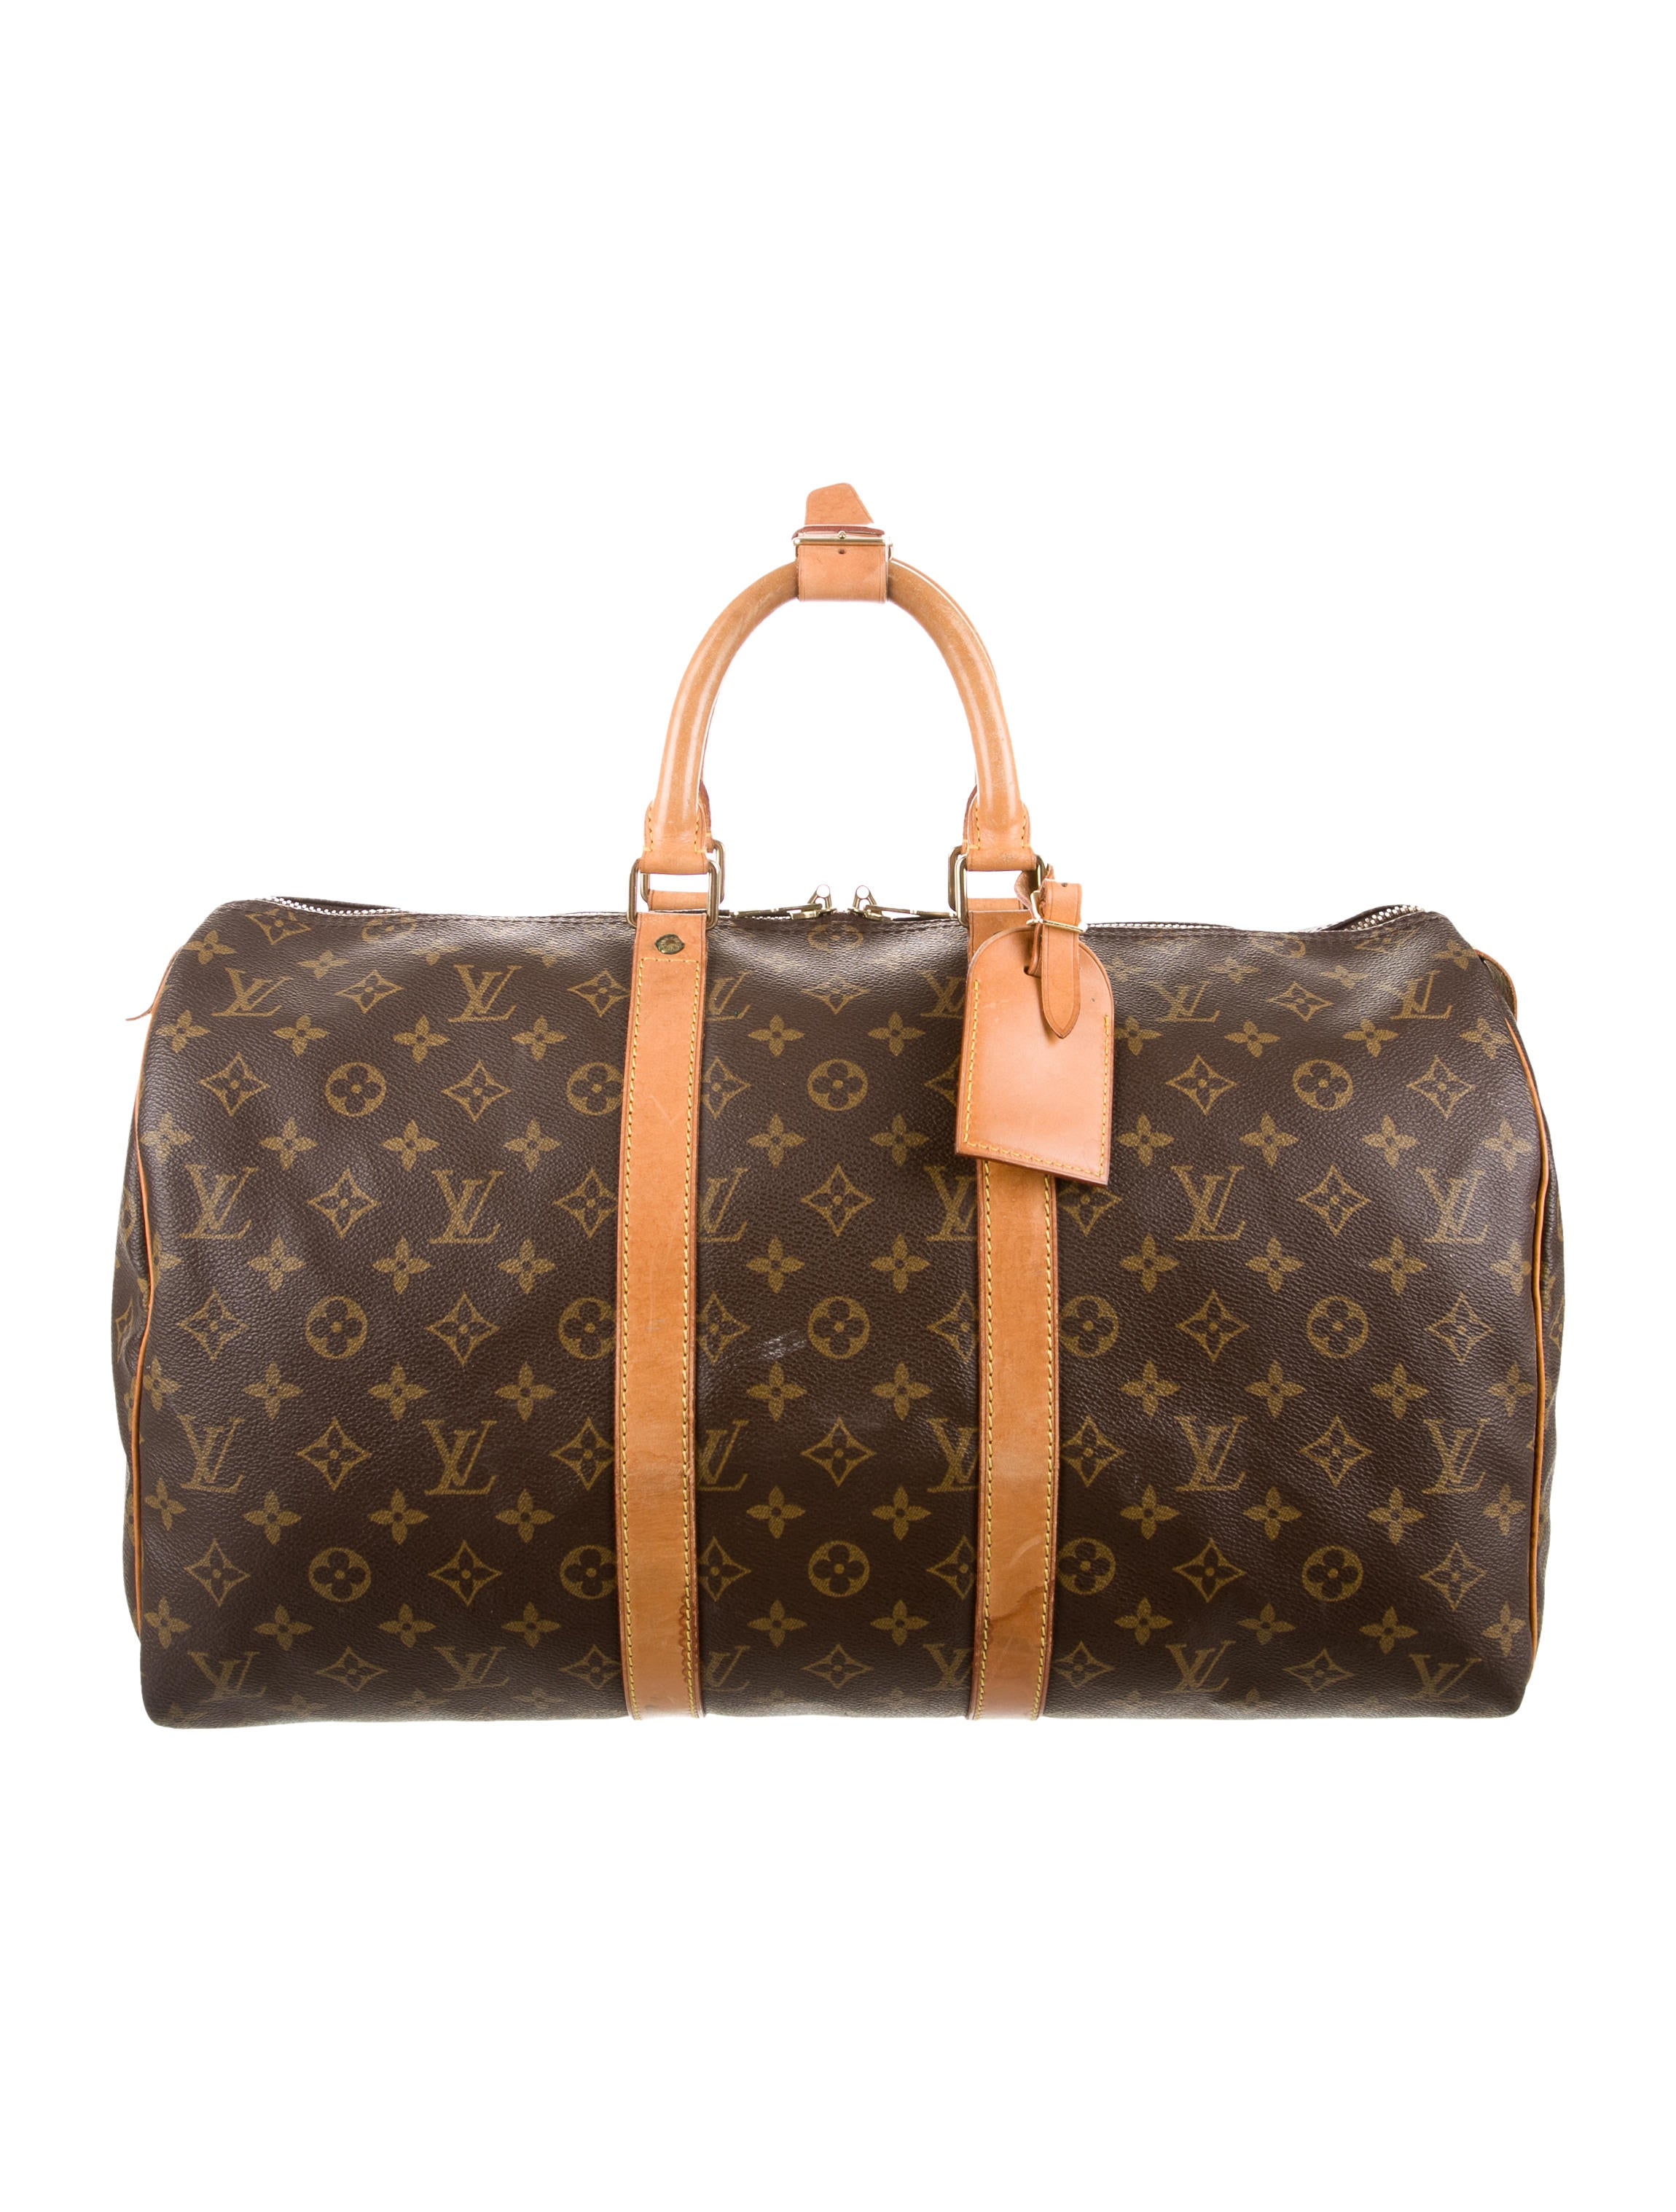 louis vuitton monogram keepall 45 bags lou98966 the realreal. Black Bedroom Furniture Sets. Home Design Ideas